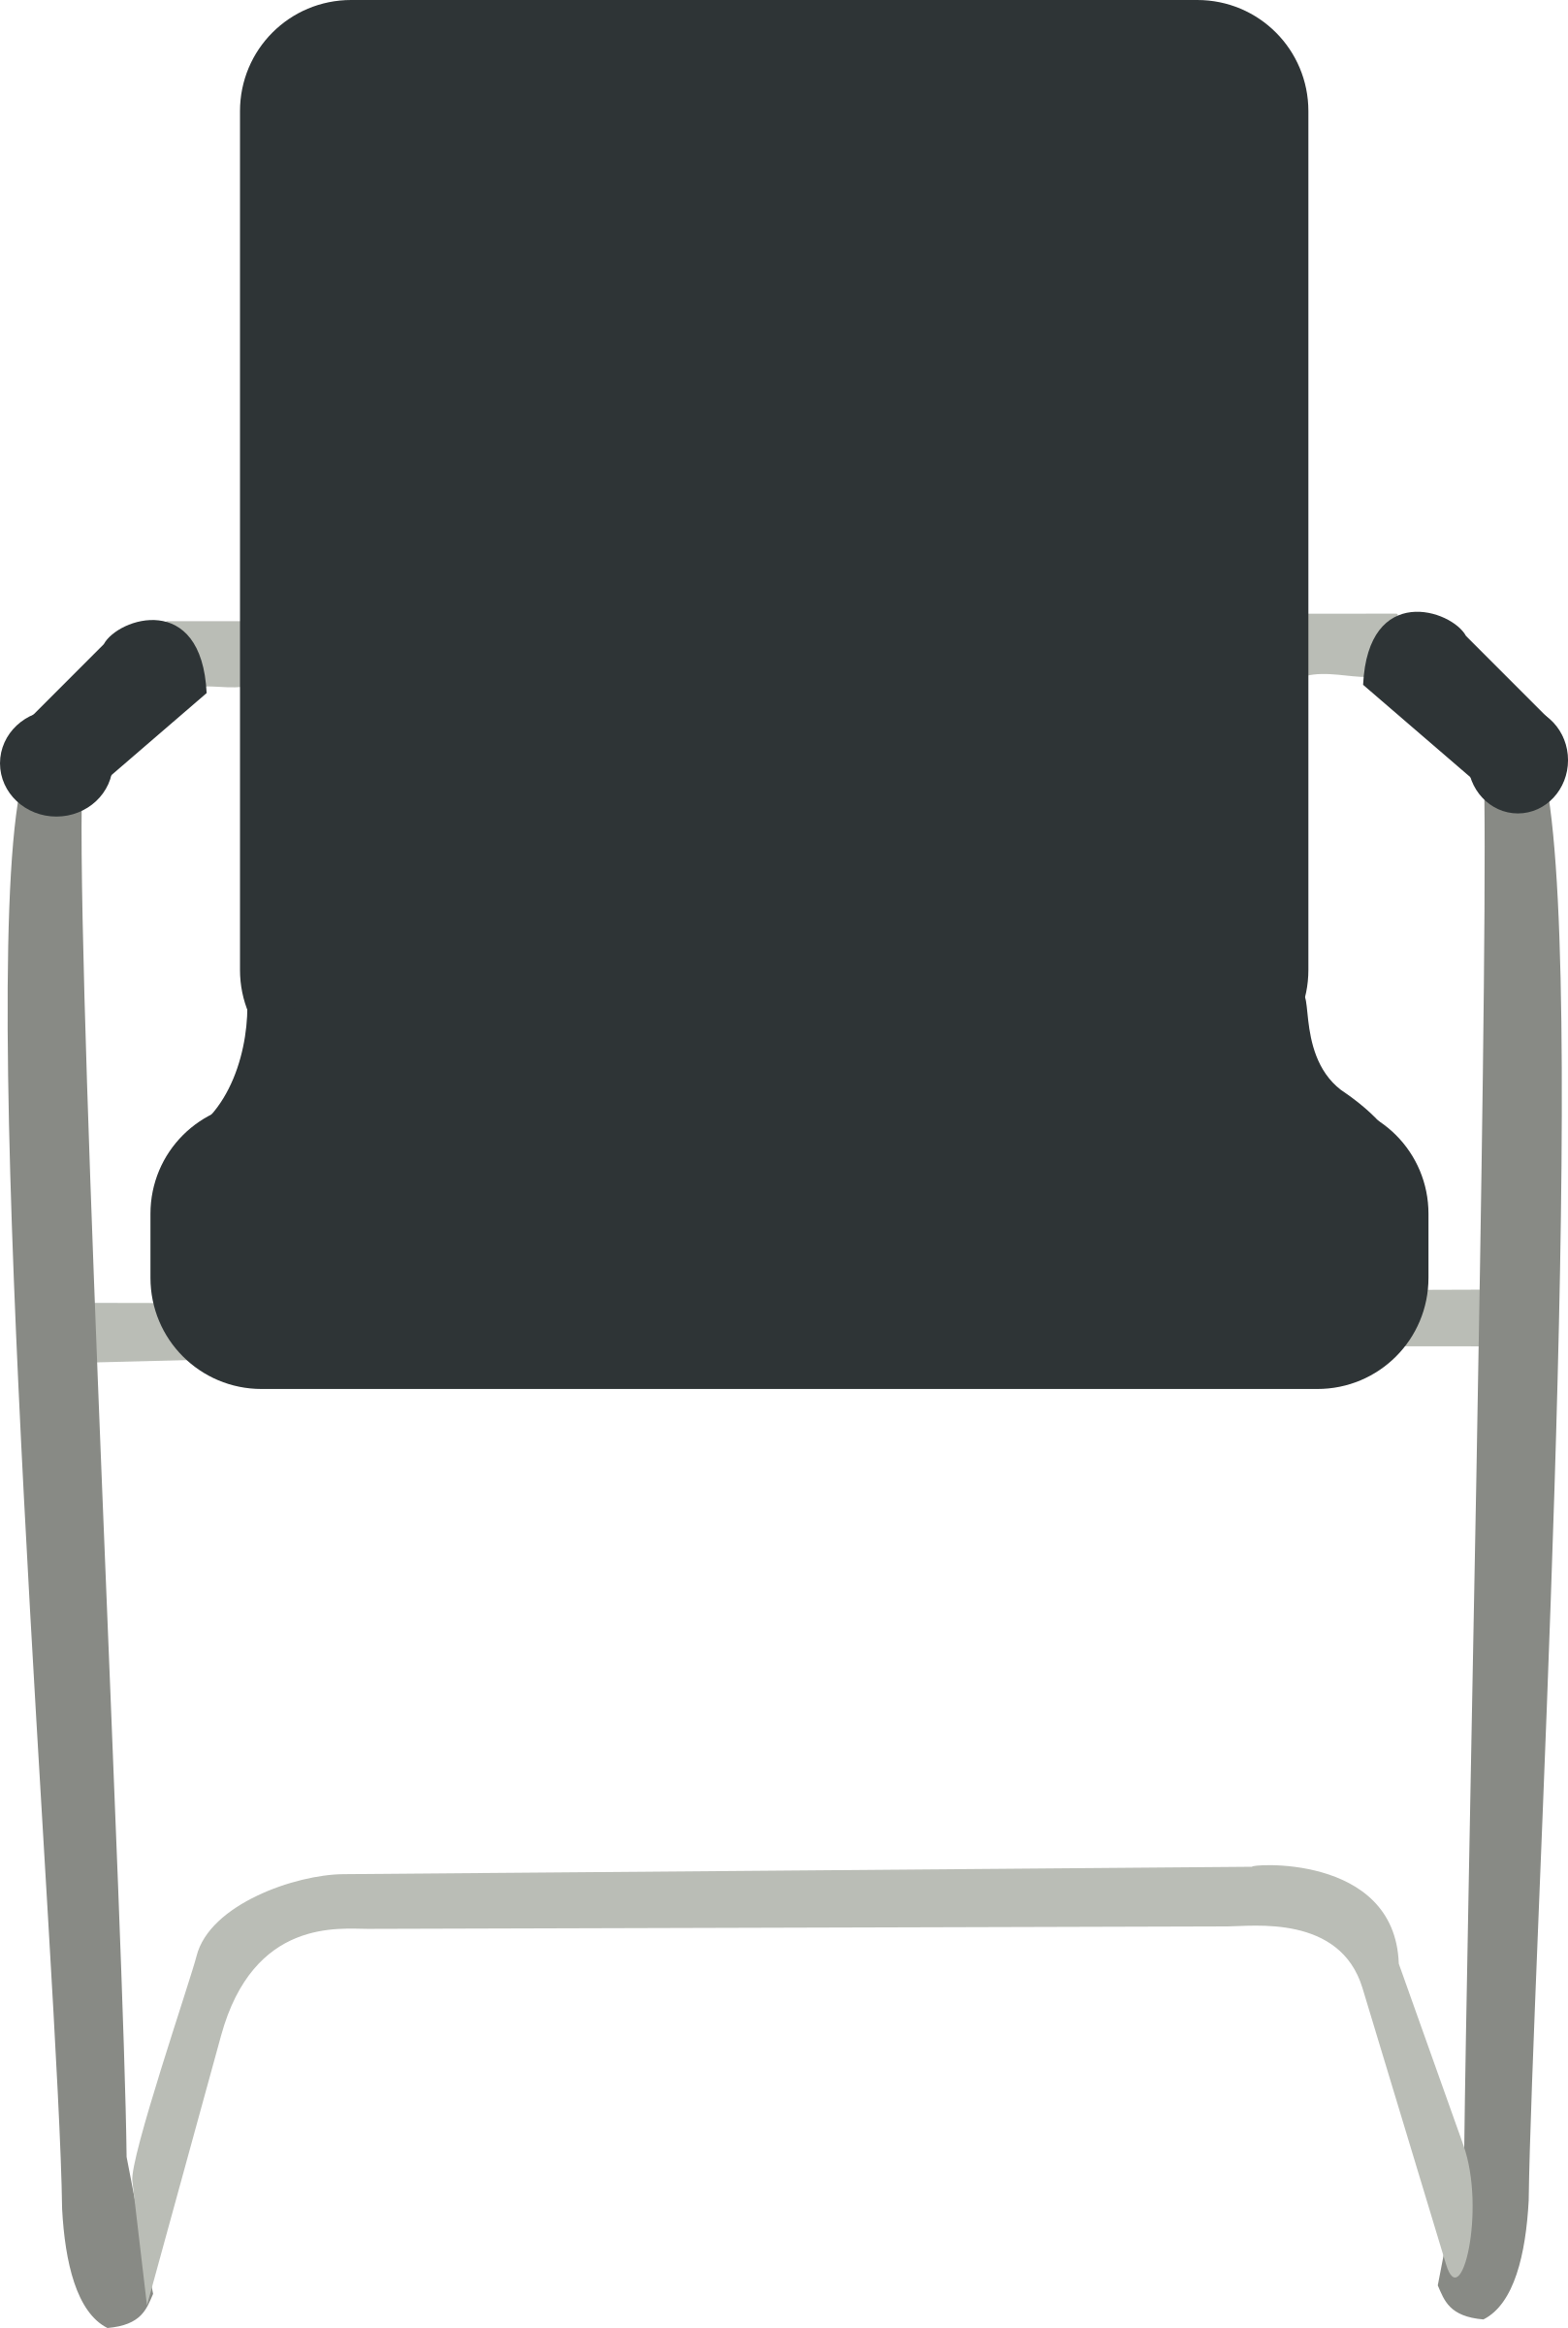 Volleyball clipart chair. Desk black big image